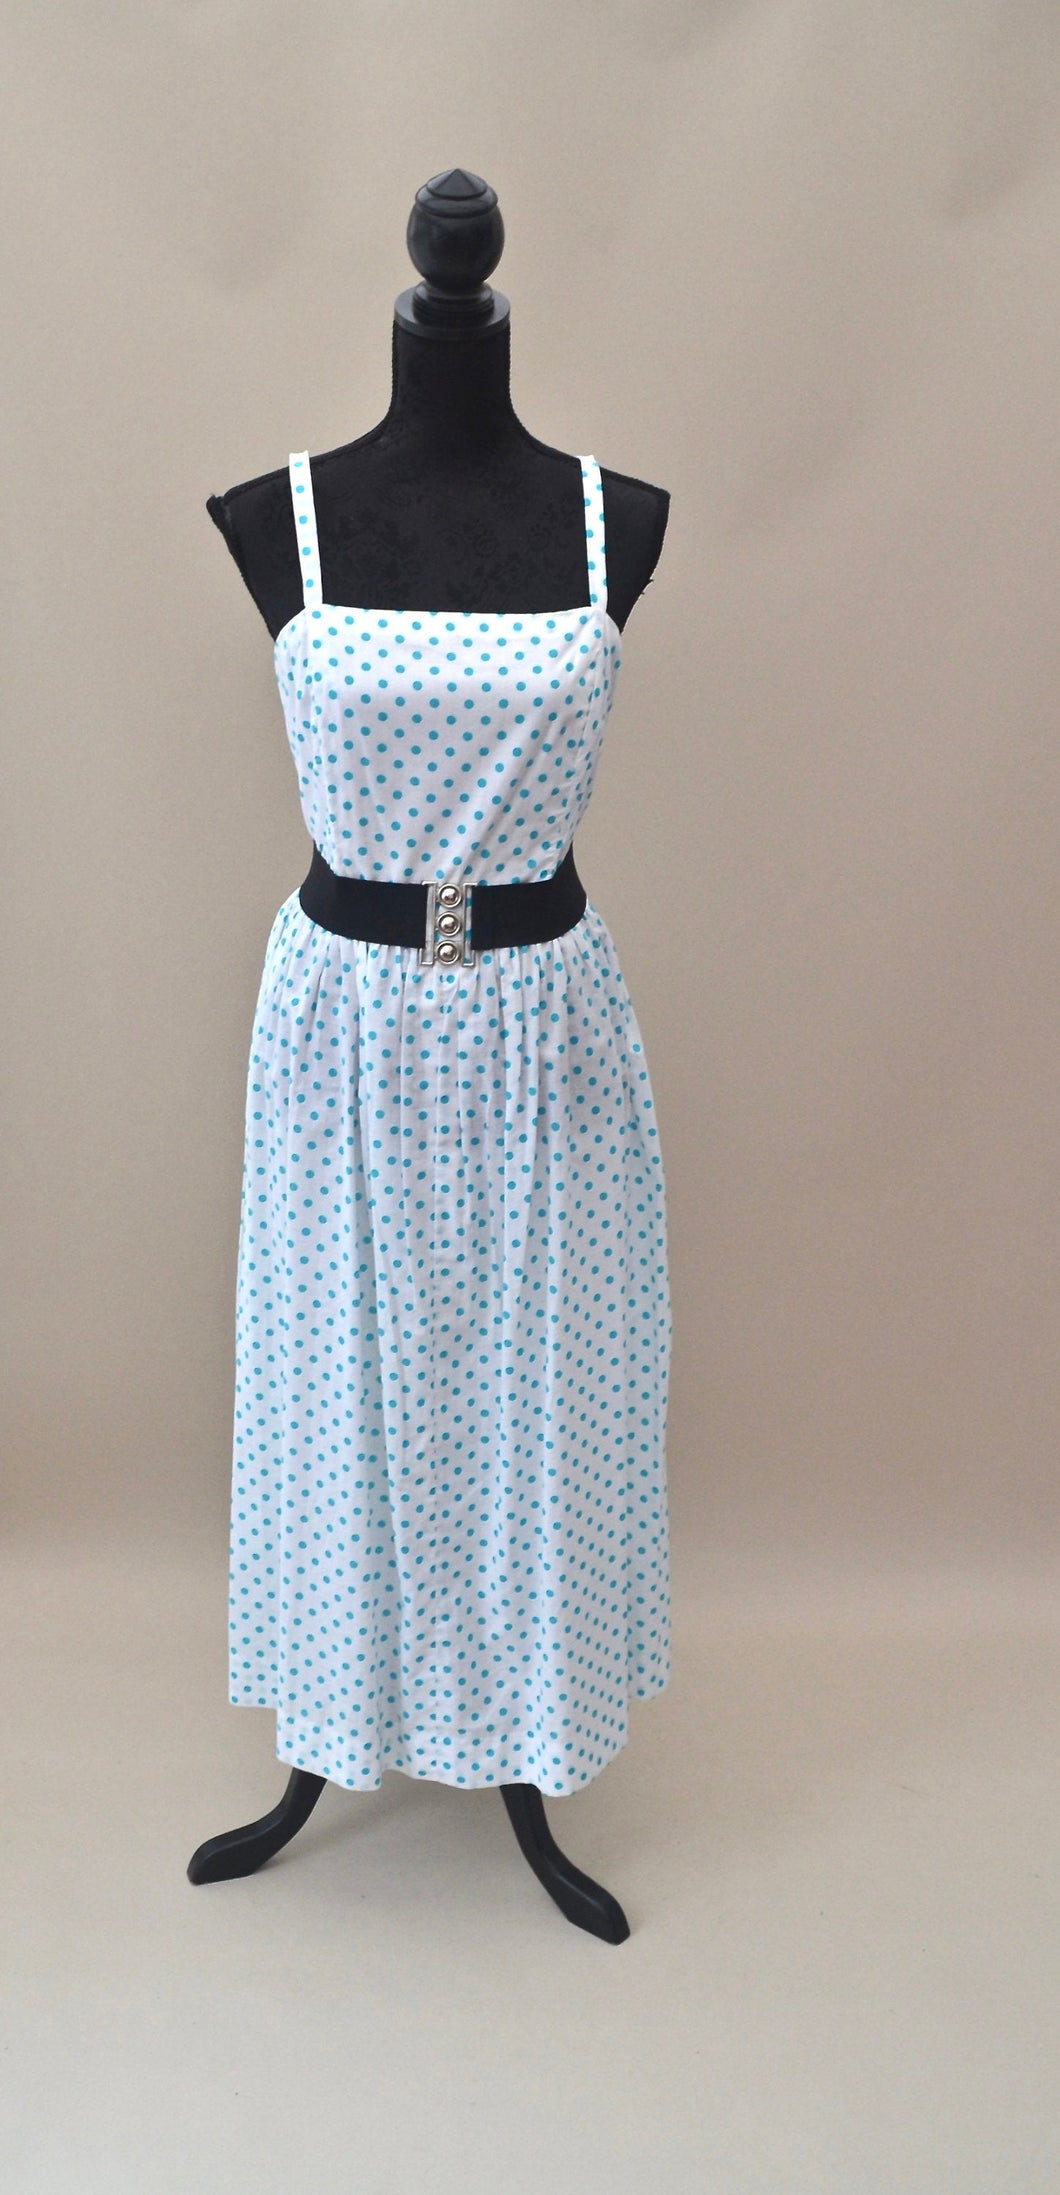 1990s Polka dot dress and jacket |  50s Rockabilly style dress | Blue and white dress | Est UK size 12/14